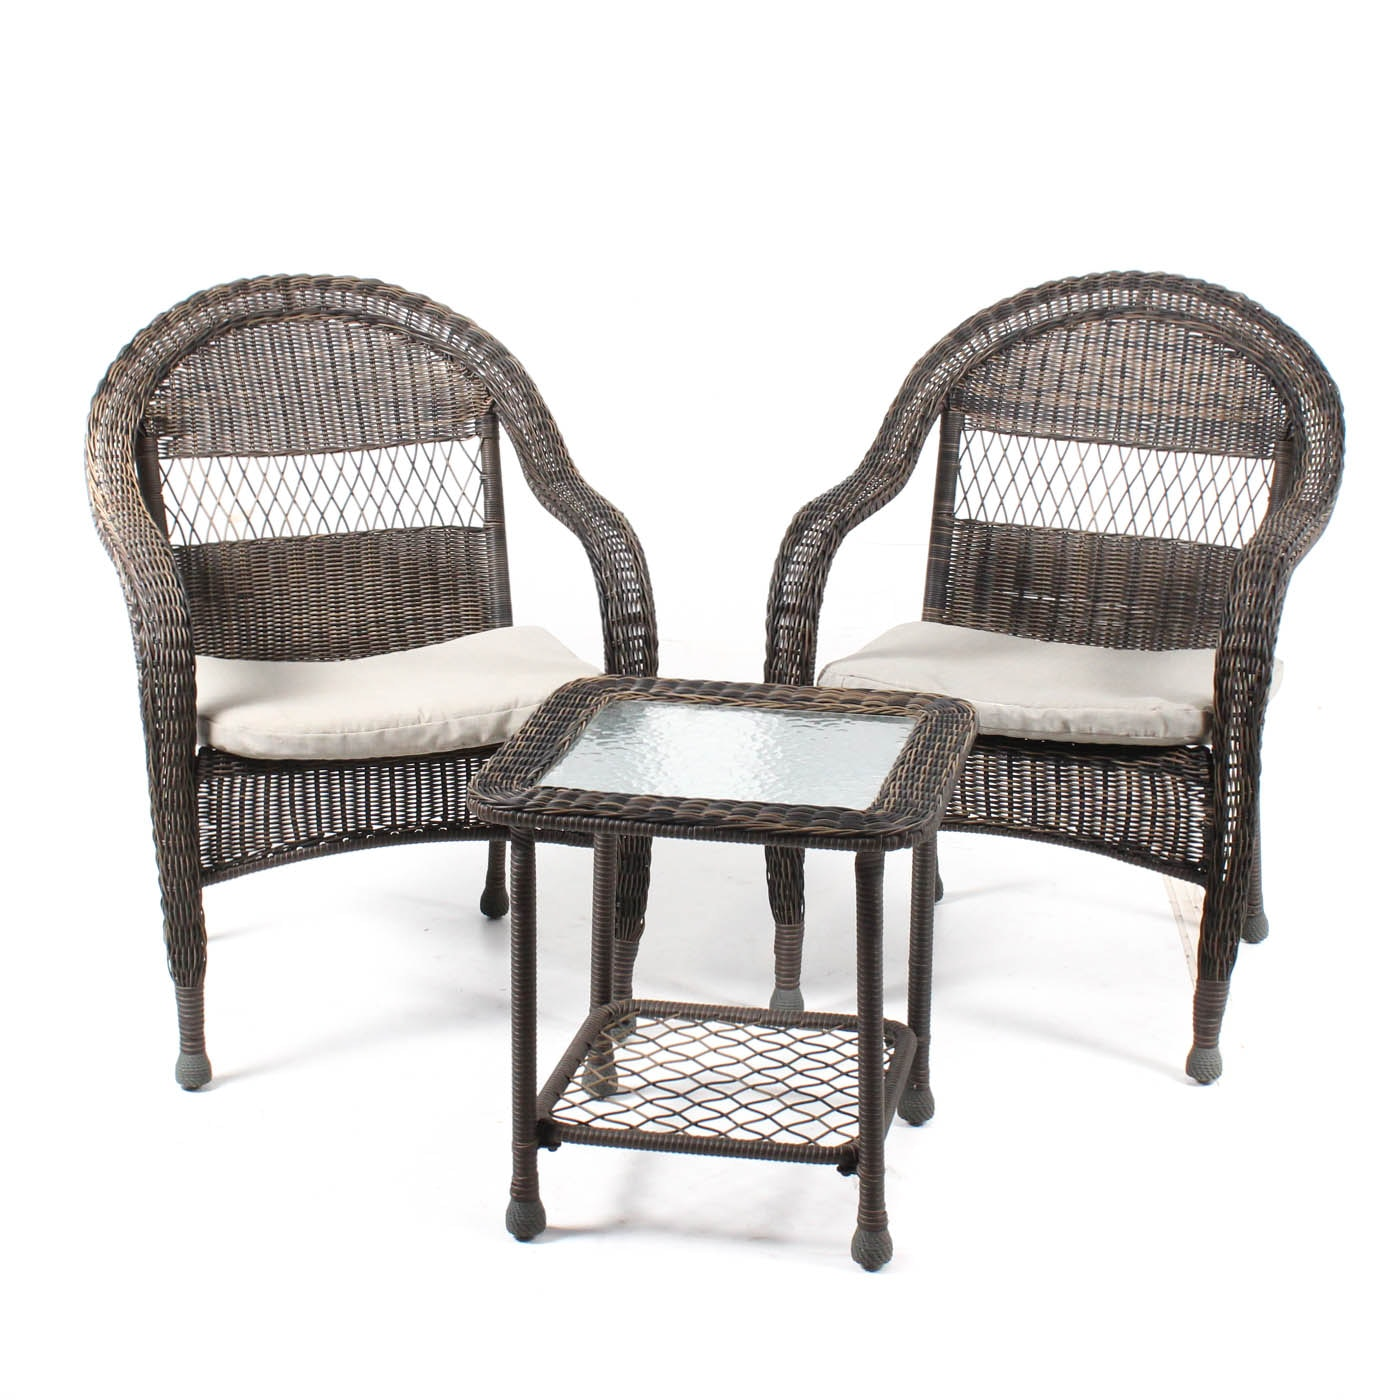 Outdoor Wicker Chairs and Side Table